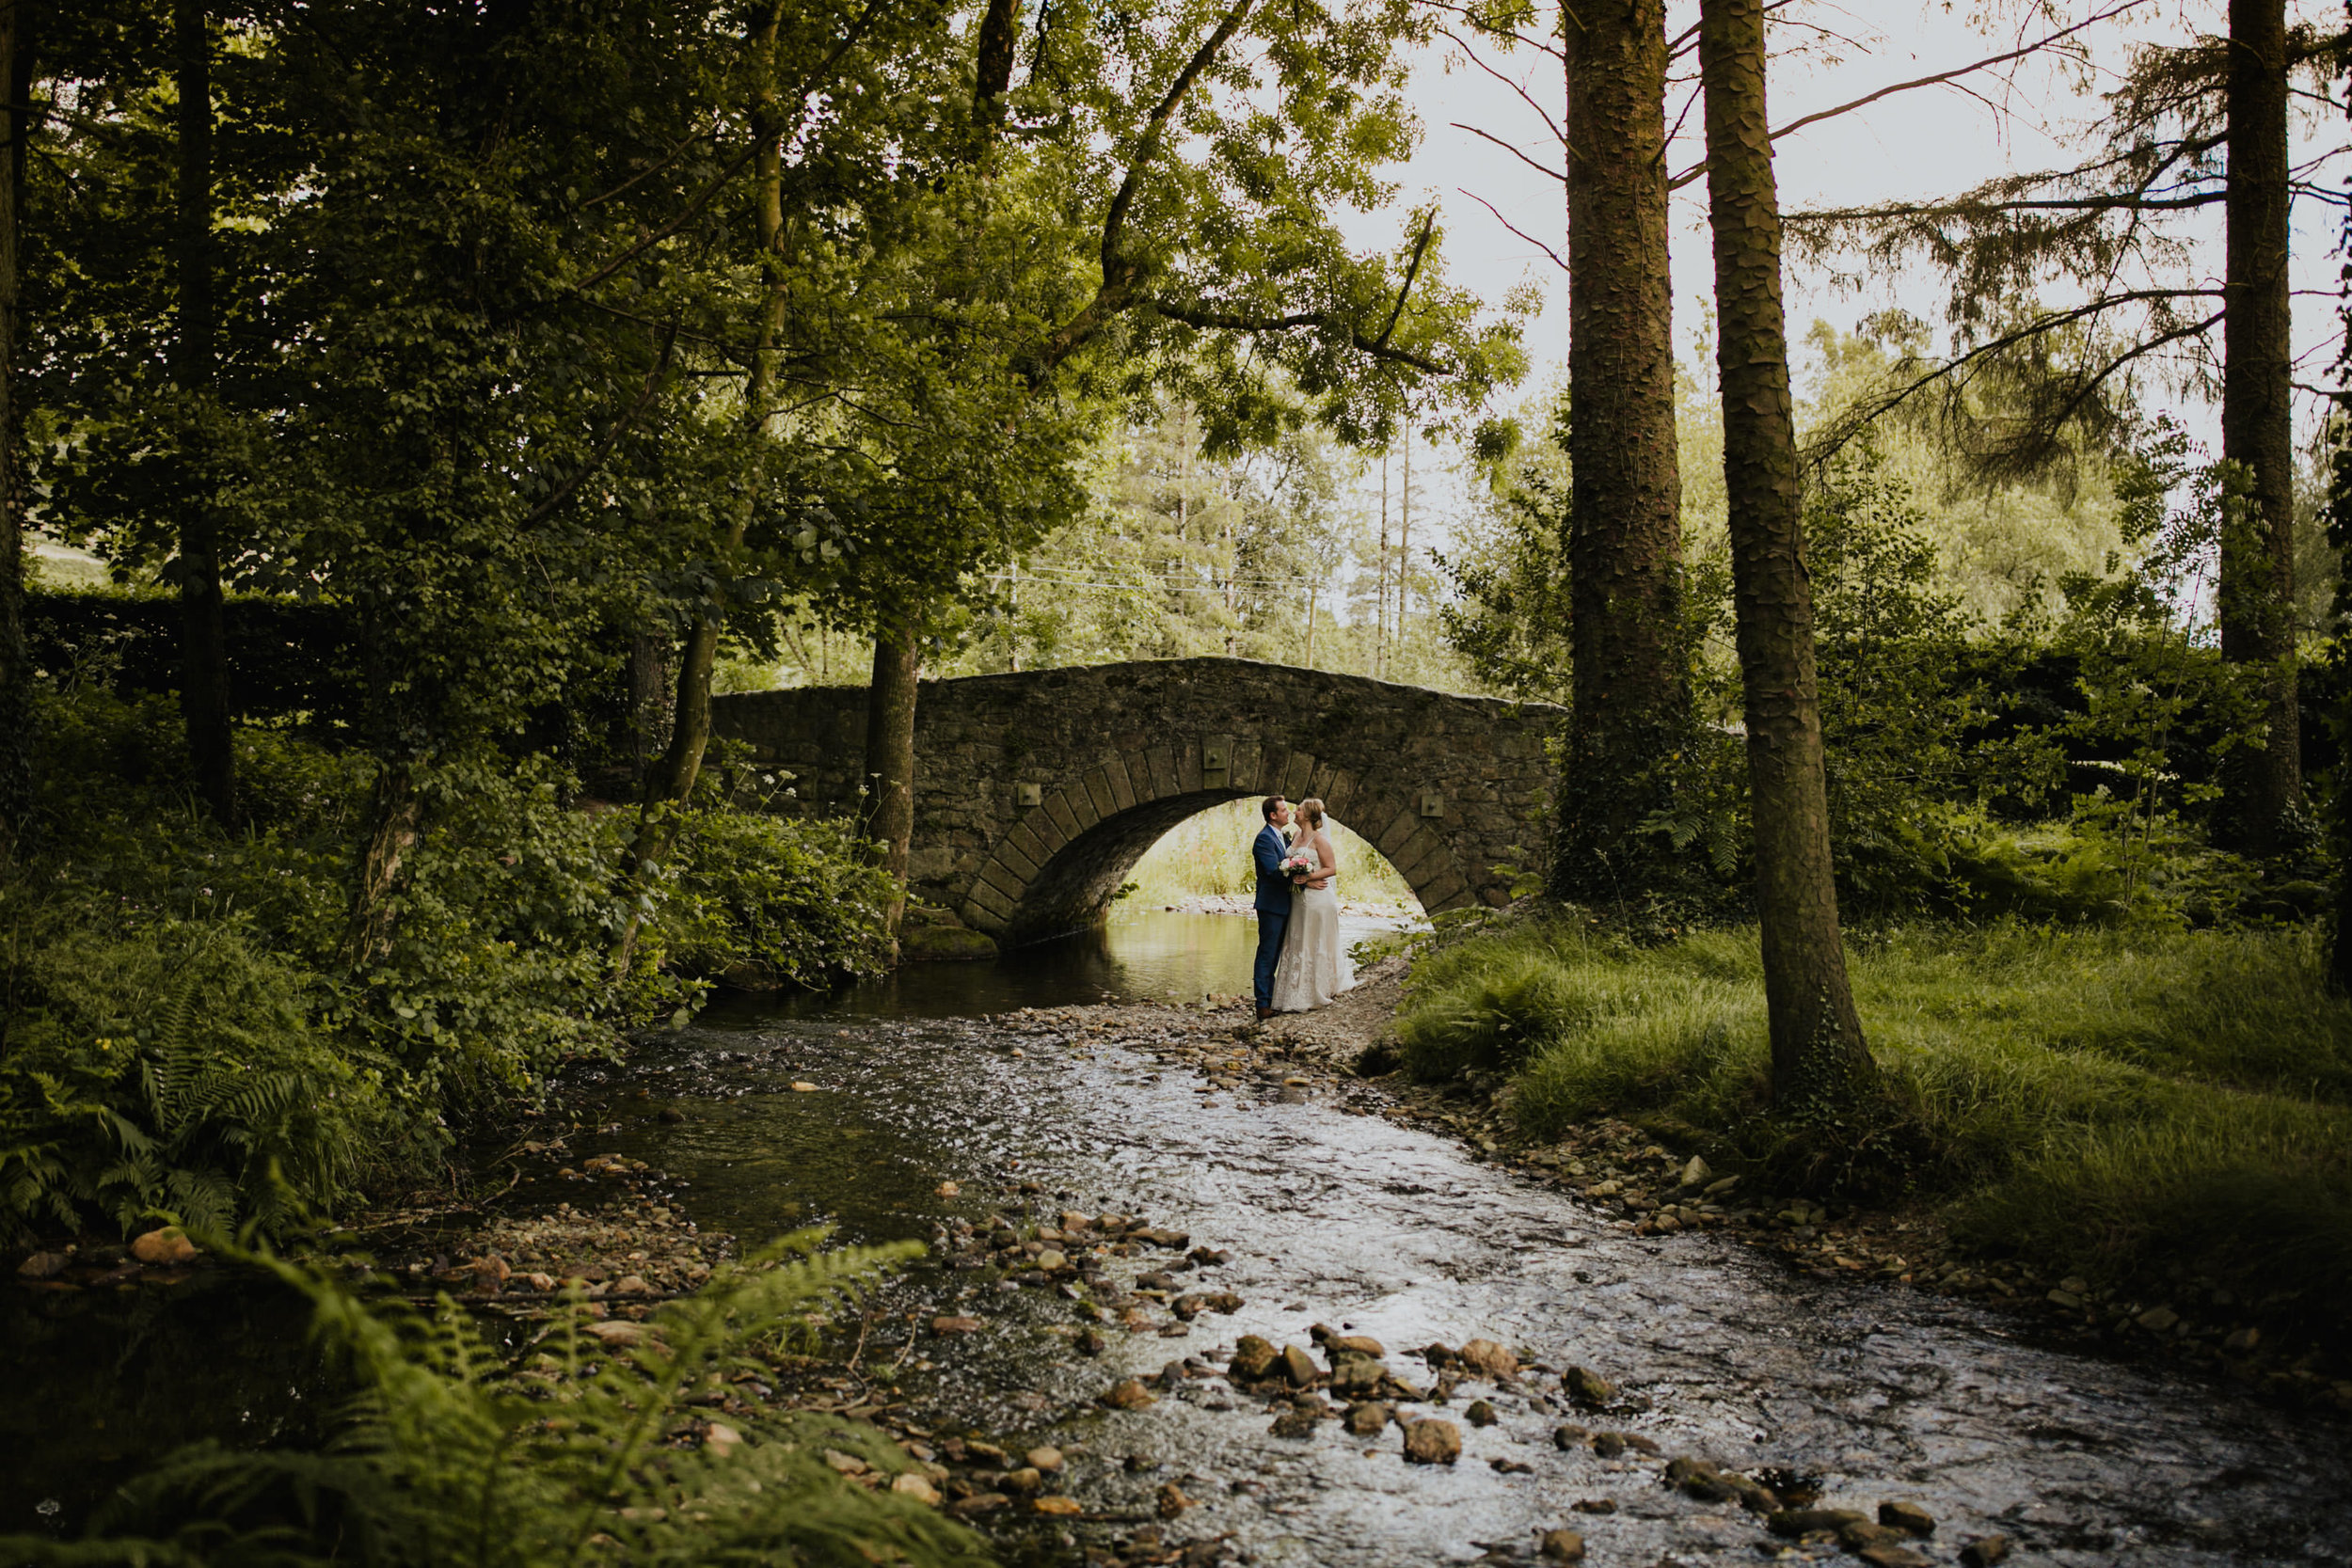 s&a_brooklodge_wedding_photographer_livia_figueiredo_24.jpg